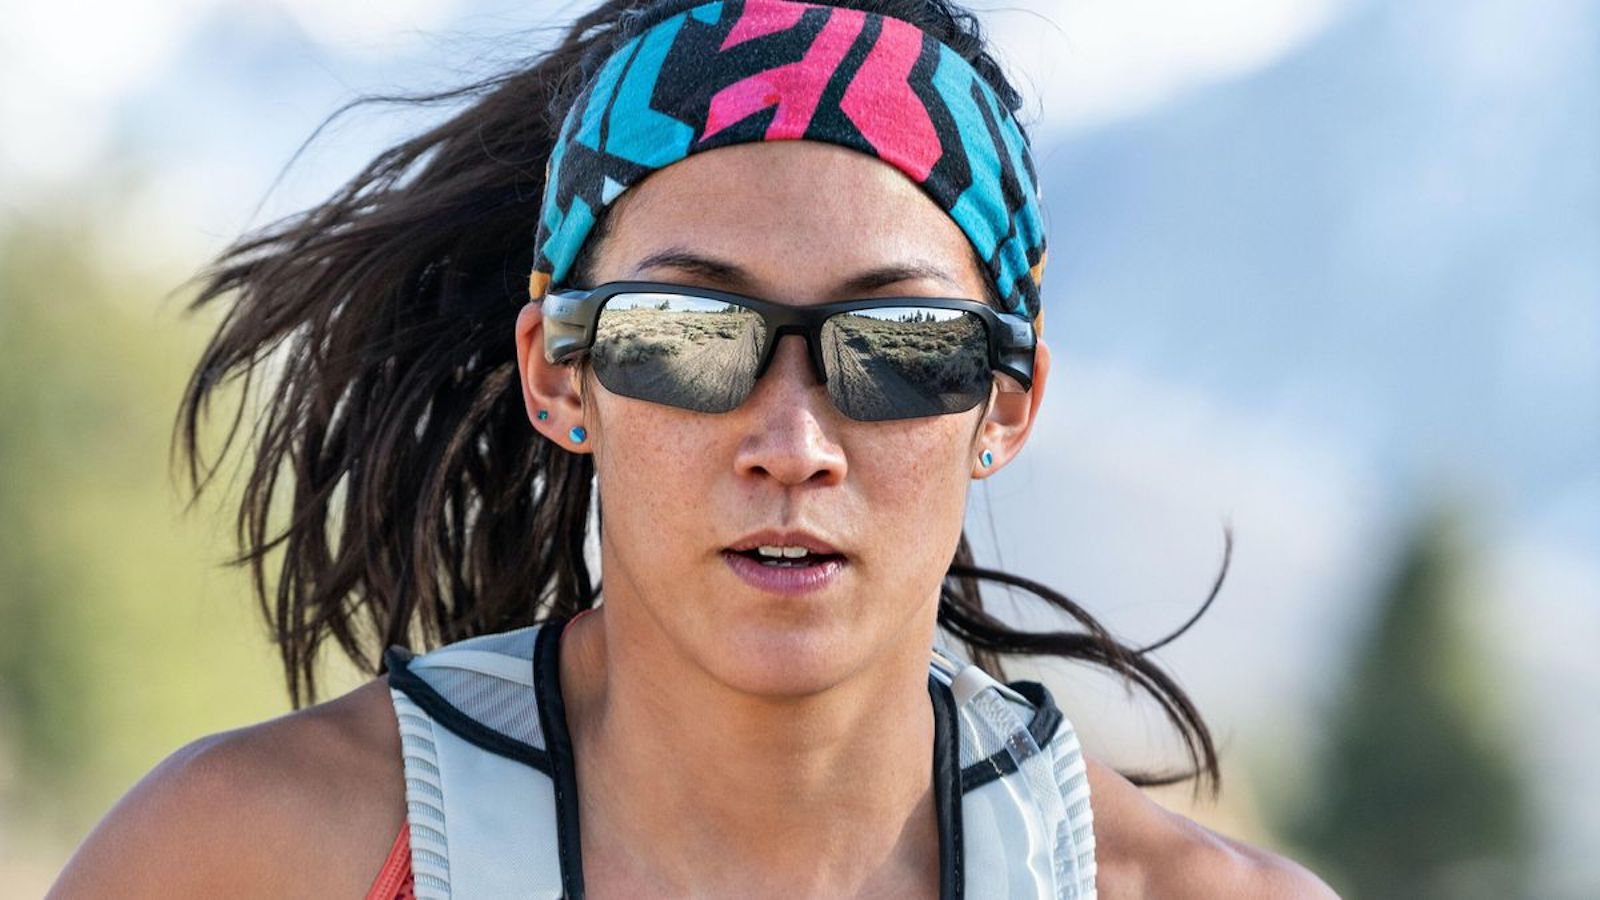 Bose Frames Tempo audio sunglasses feature two Bose speakers